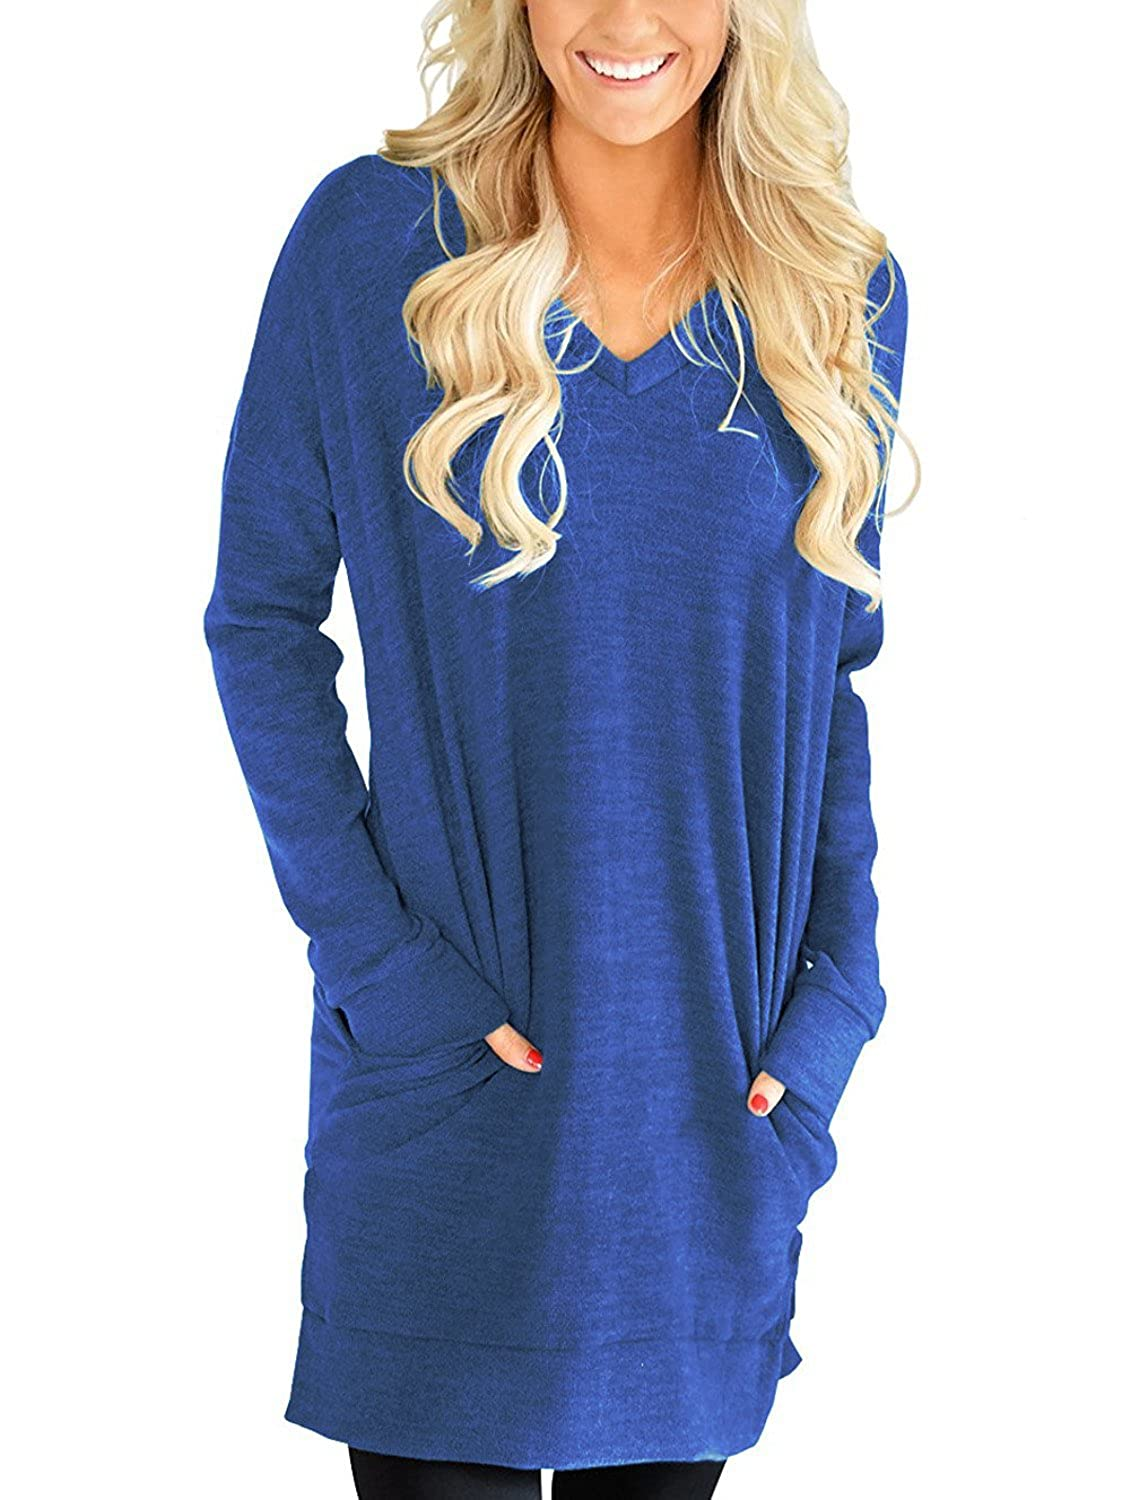 bluee lili's story Women Long Sleeves Shirt VNeck Tunic Tops for Legging Pocket Solid color Casual Blouse